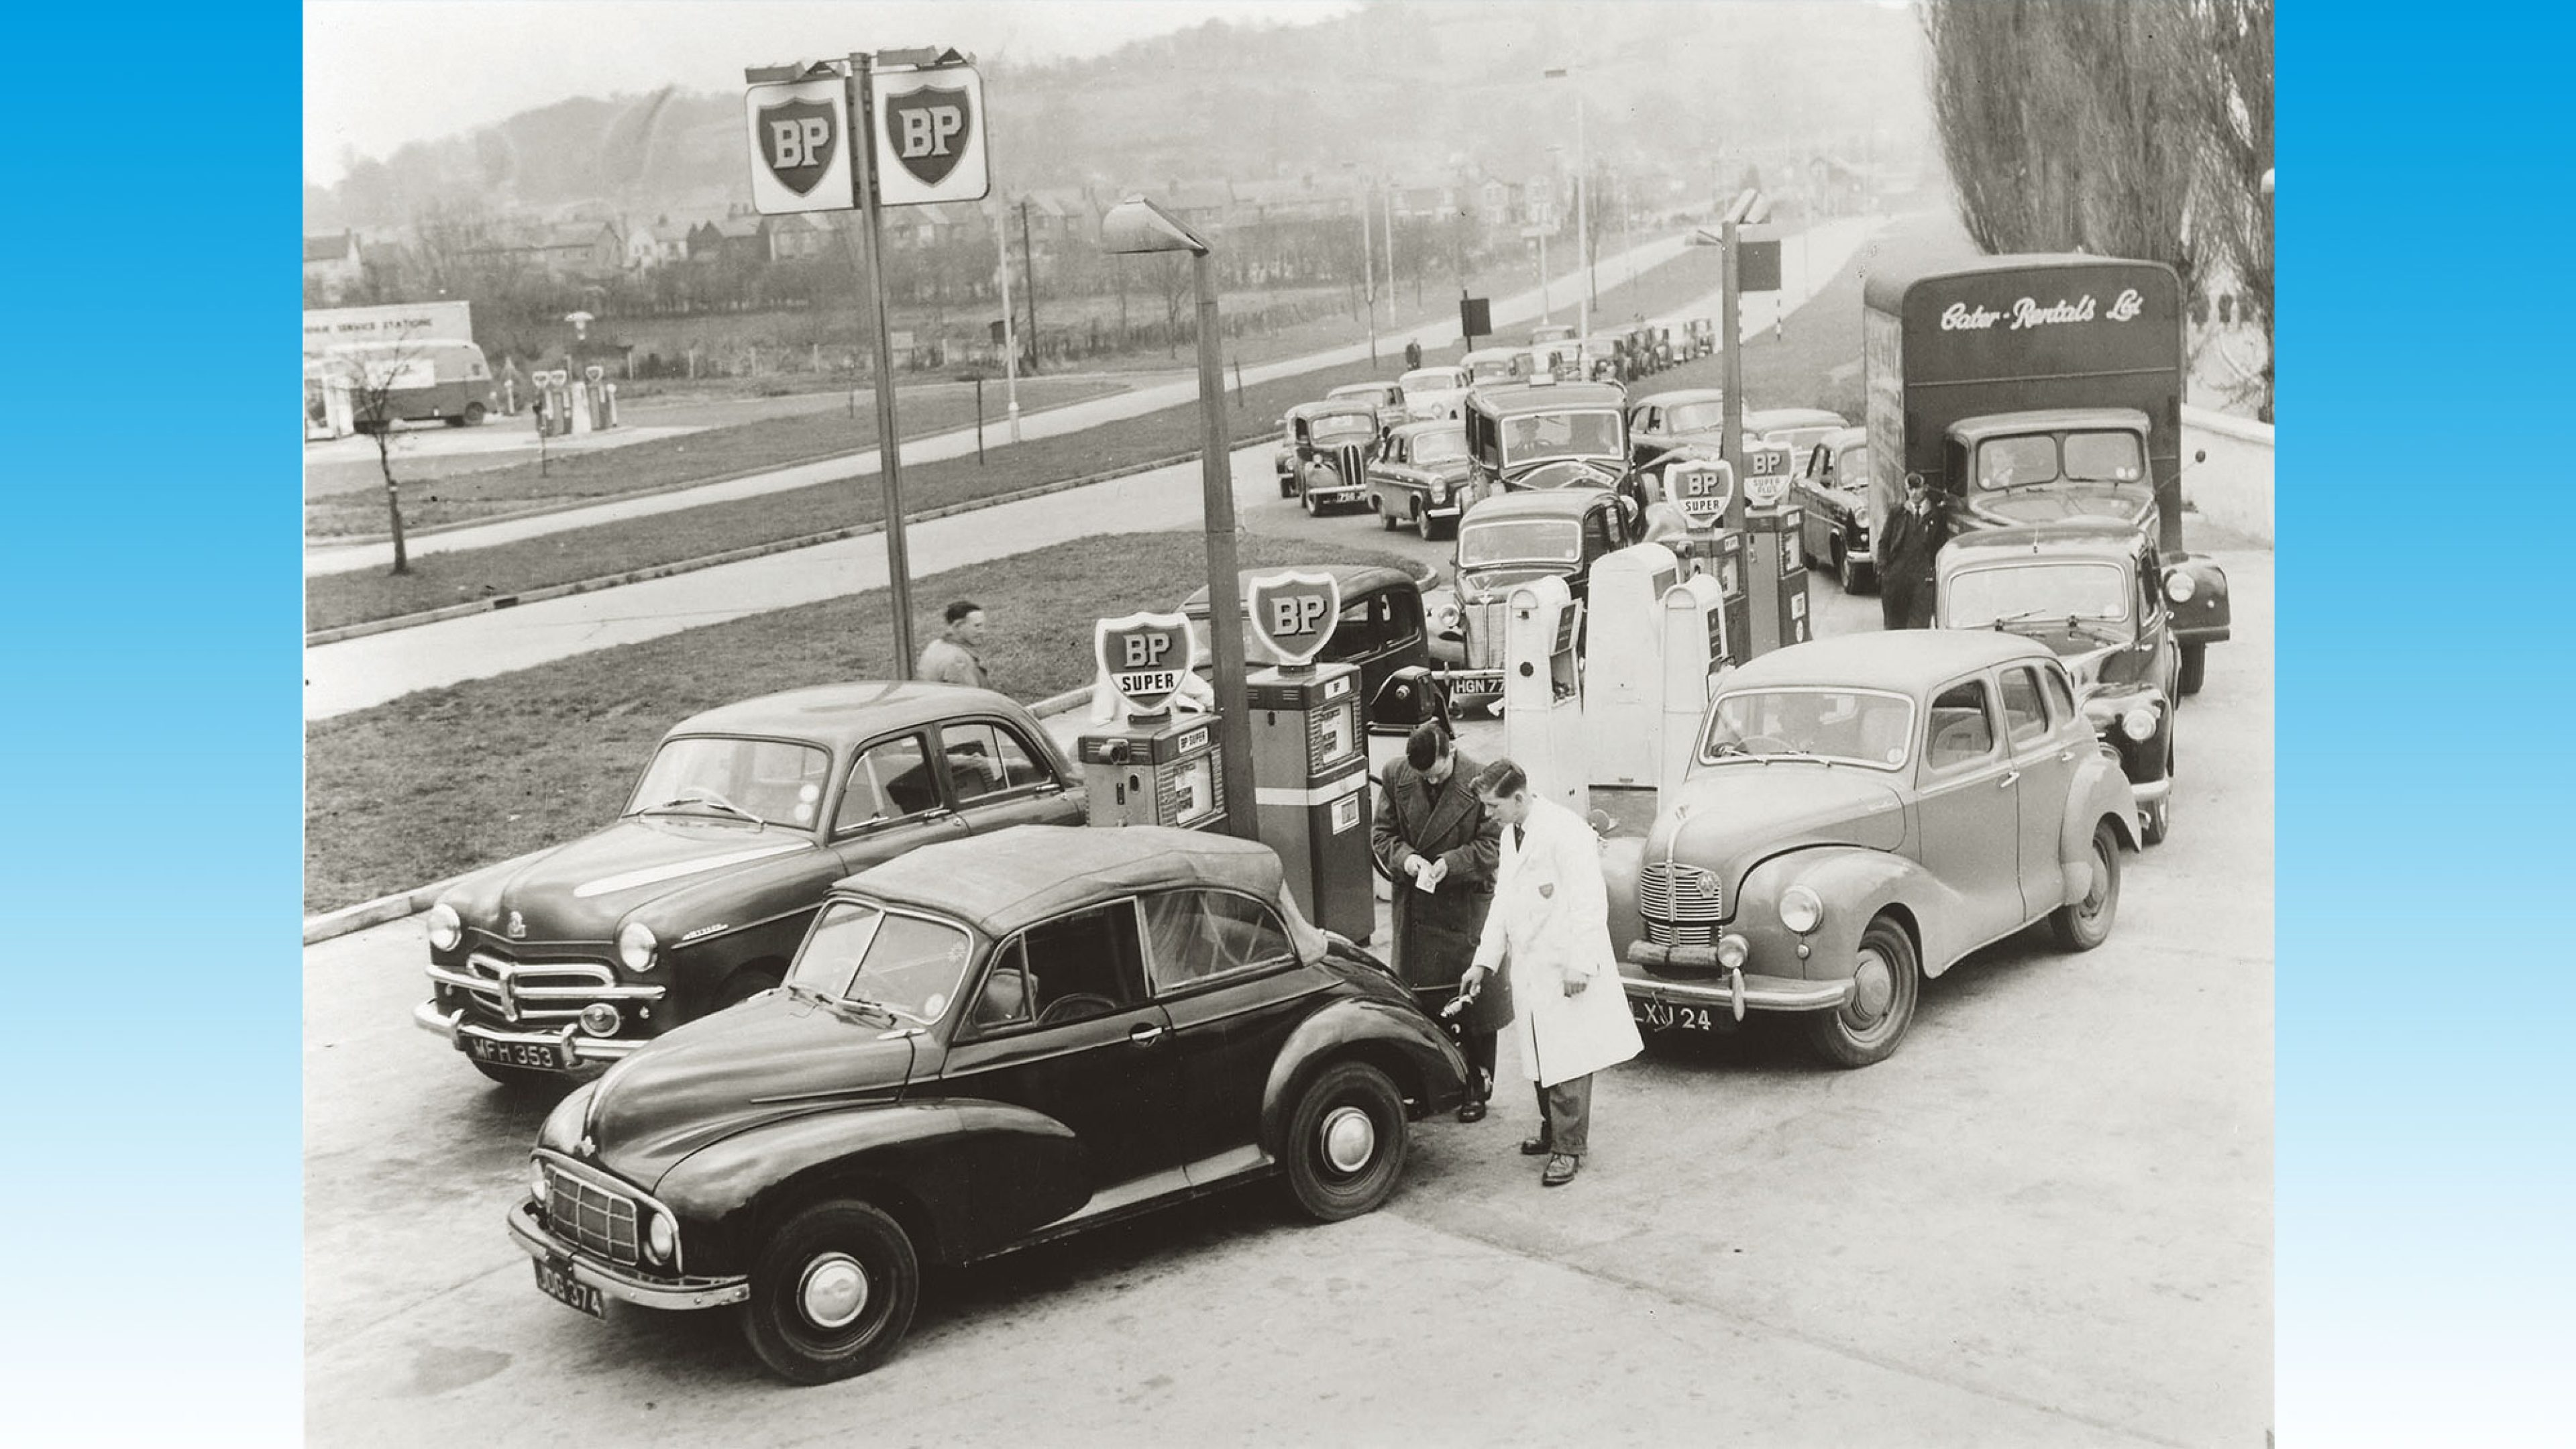 Motorists queuing for rationed petrol in the UK, following the closure of the oil supply route through the Suez Canal in 1956